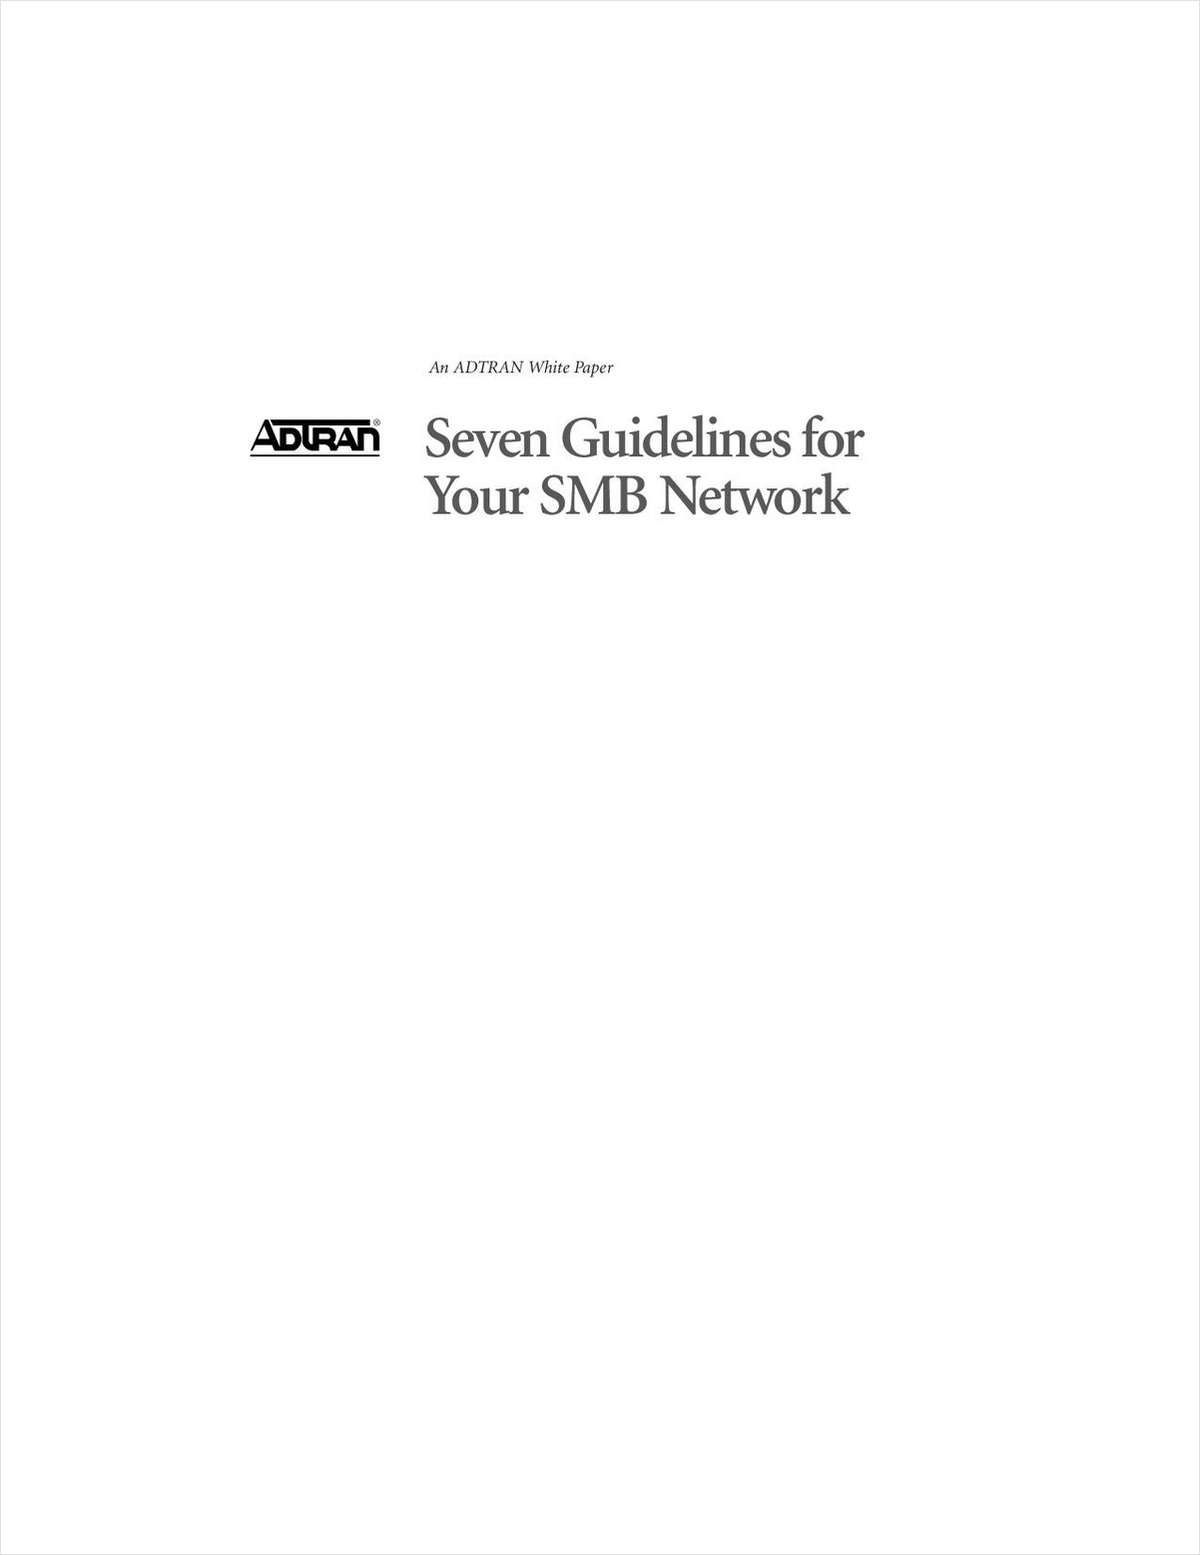 Seven Guidelines for Your SMB Network